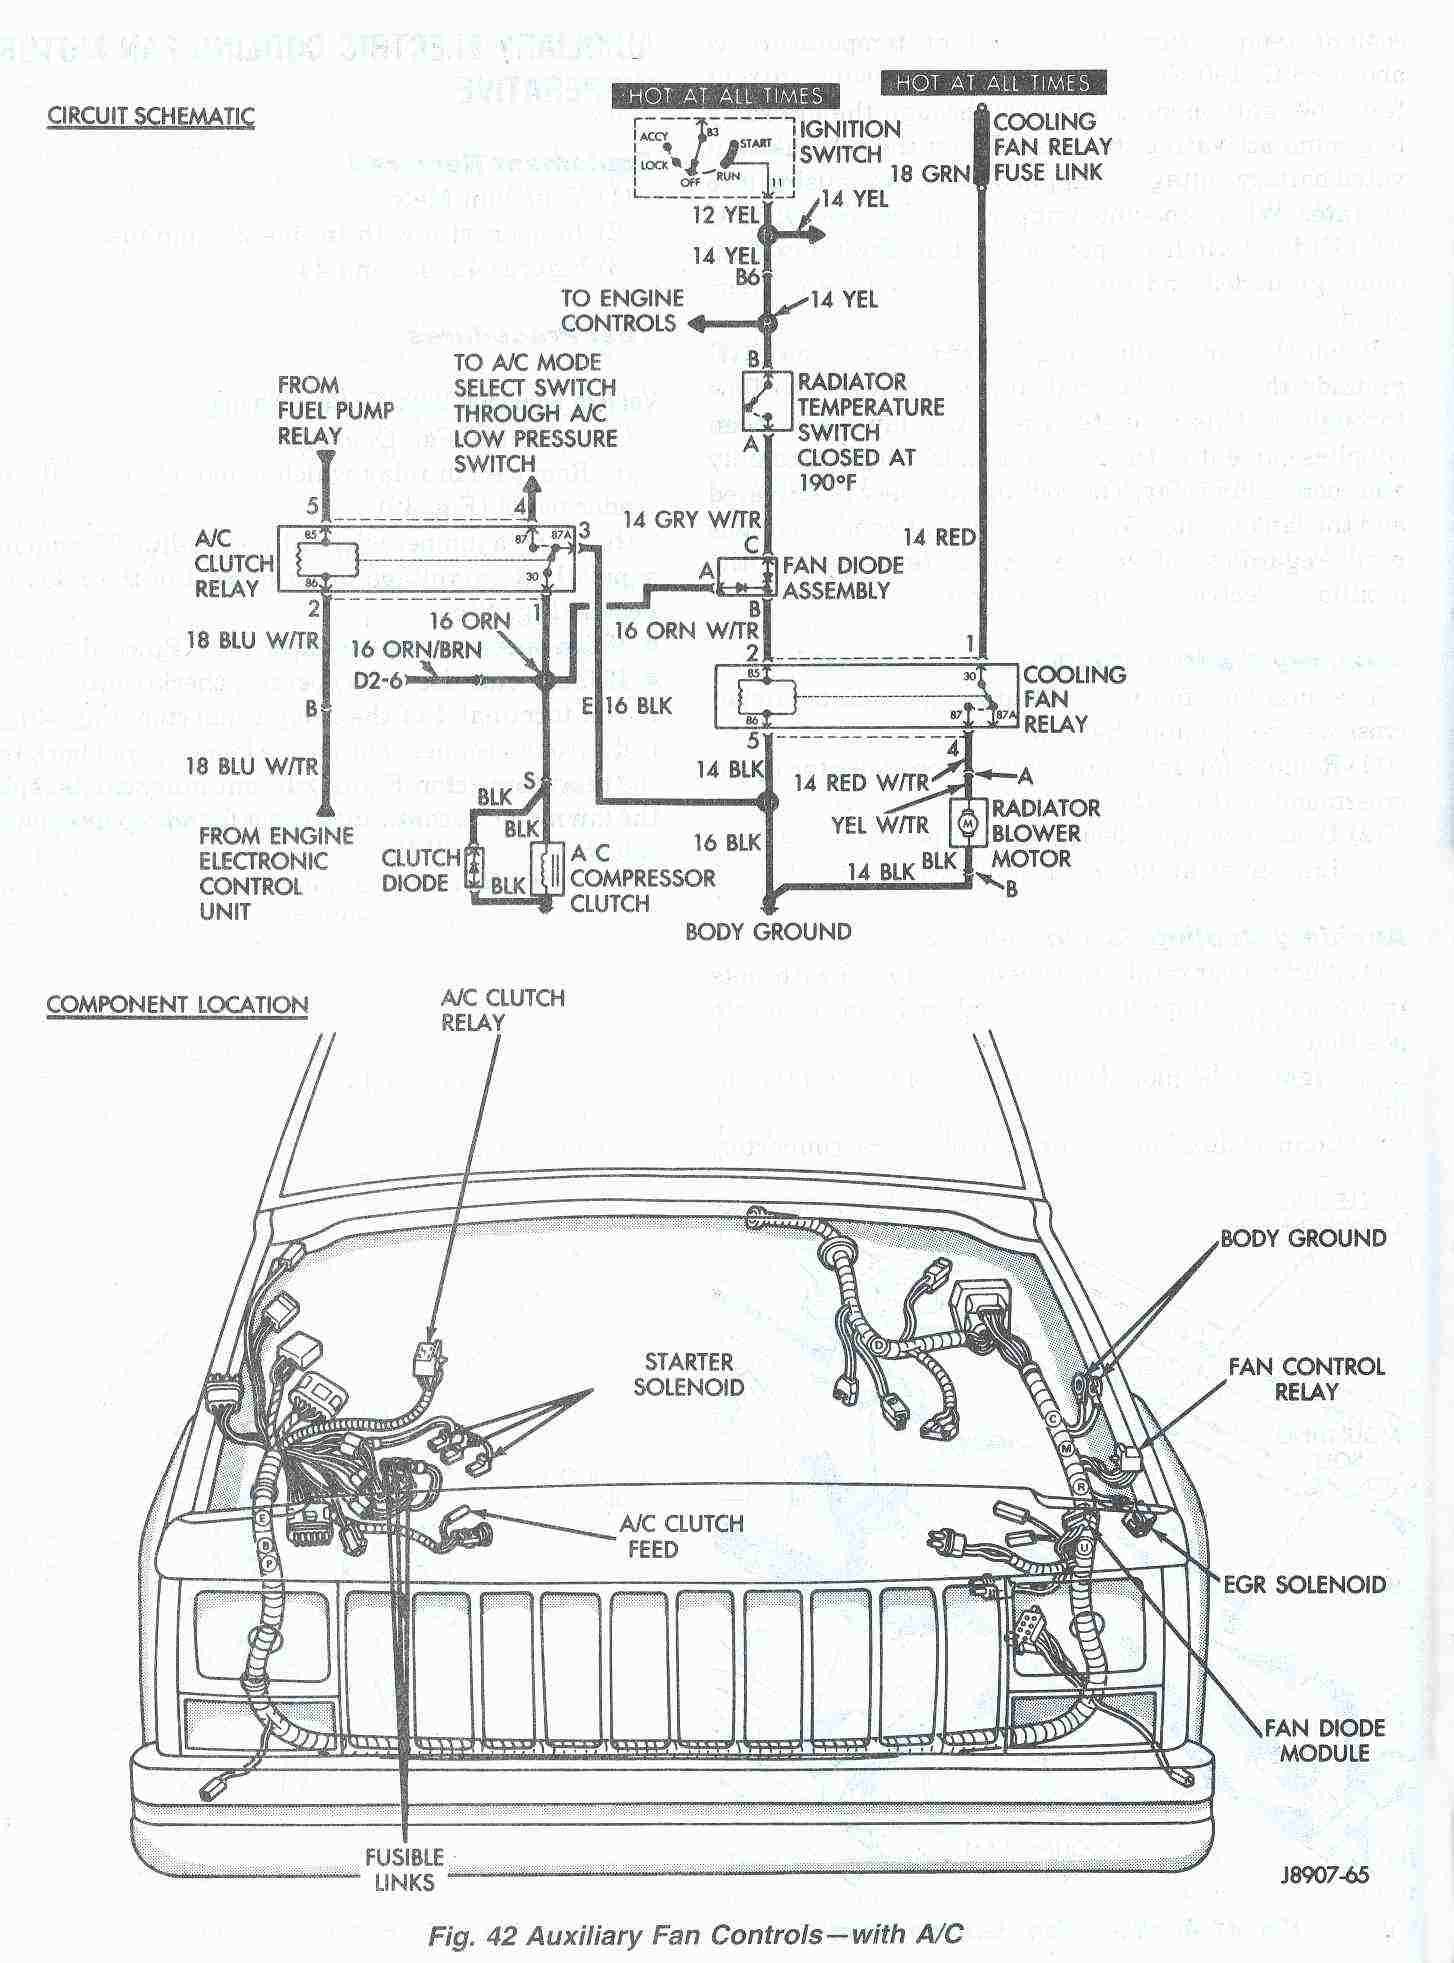 95 jeep grand cherokee infinity gold wiring diagram 95 1995 jeep grand cherokee wiring harness diagram 1995 auto wiring on 95 jeep grand cherokee infinity